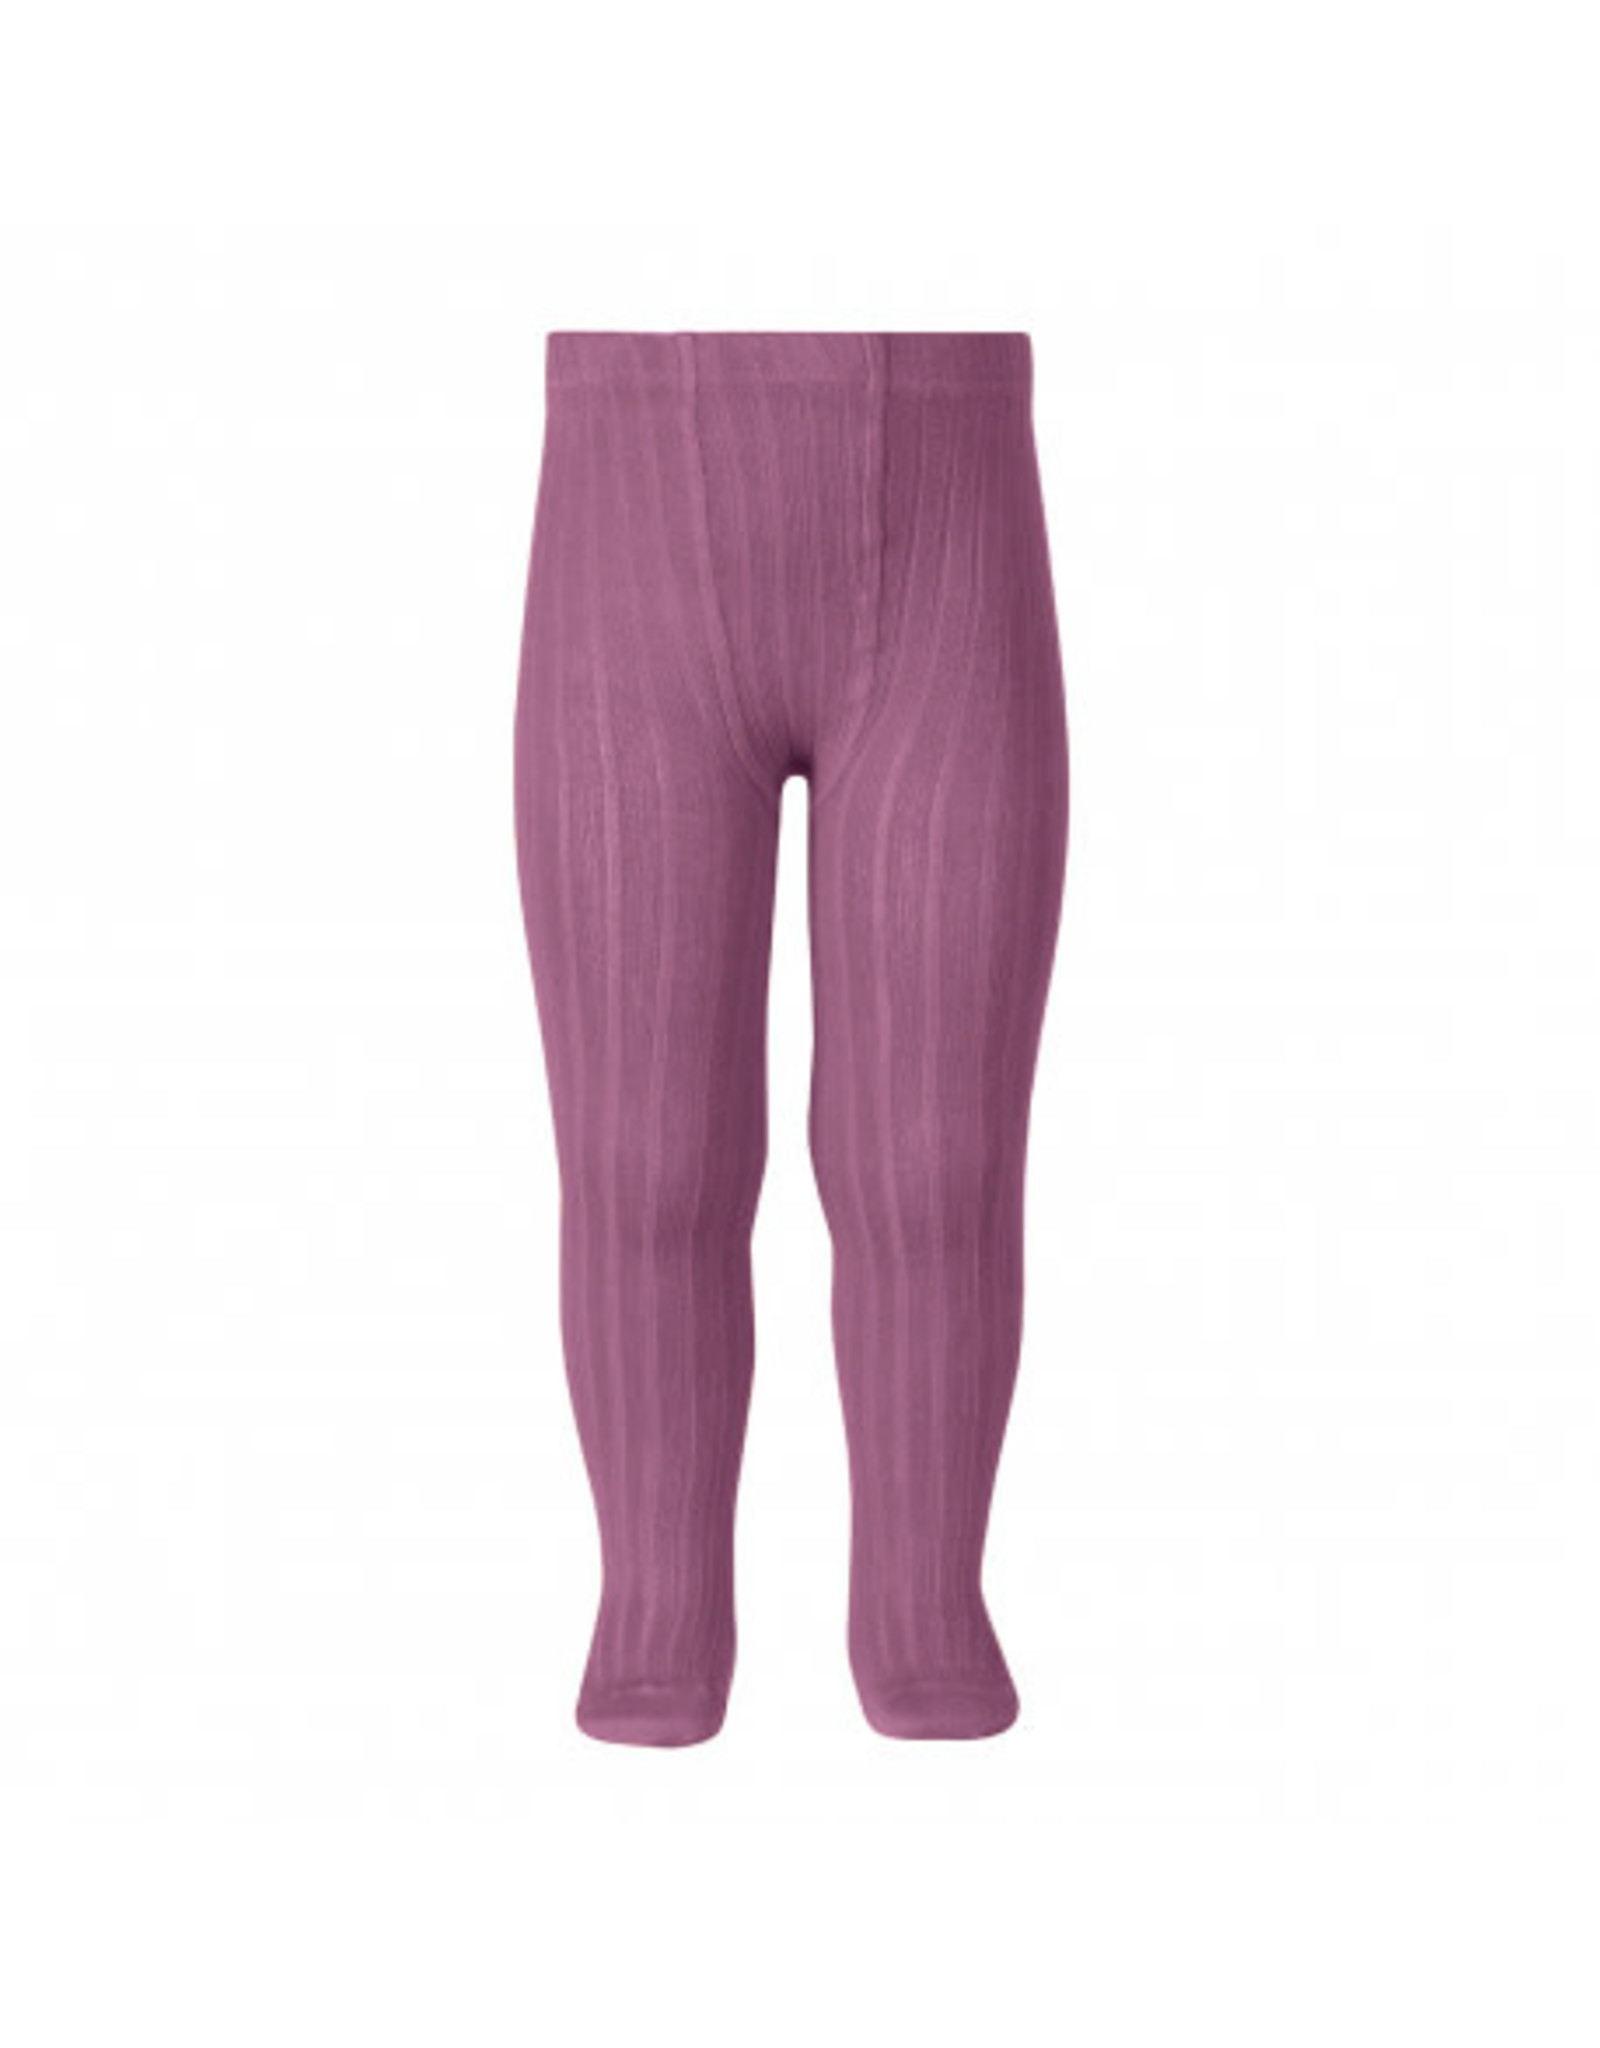 CONDOR Cassis Ribbed Tights